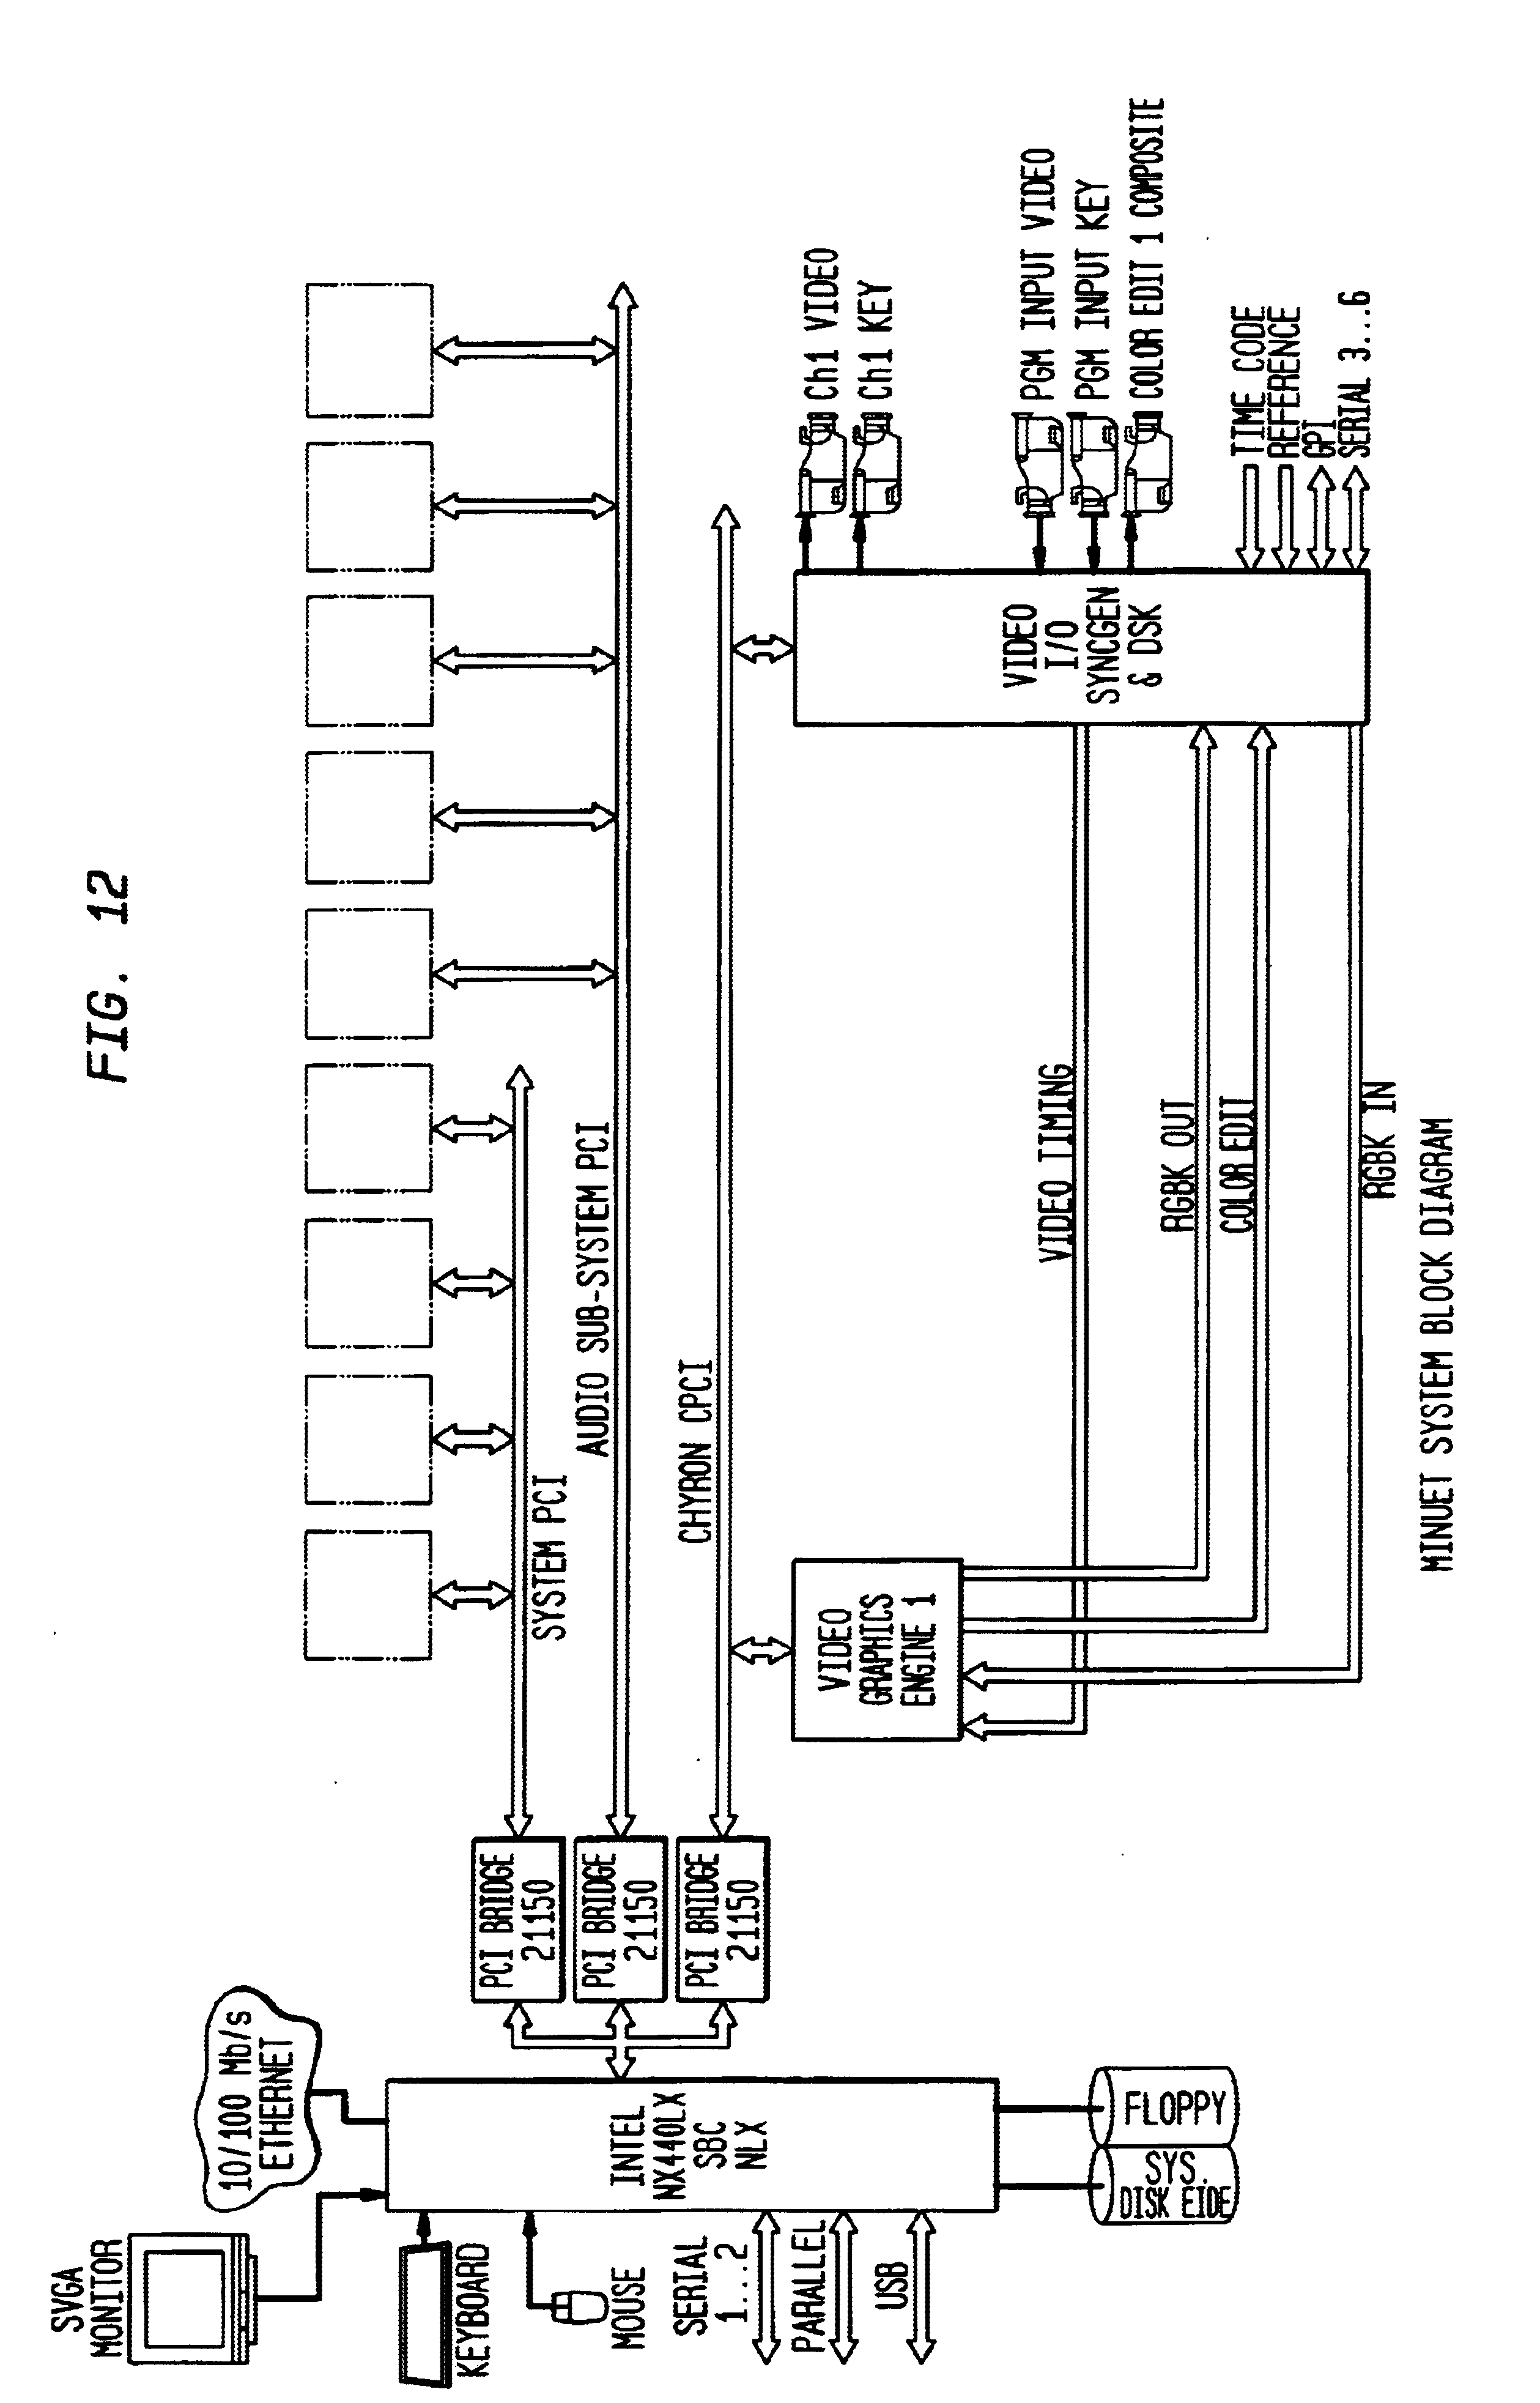 Us6900847 Video Hardware And Software System Pentium 2 Block Diagram Patent Drawing